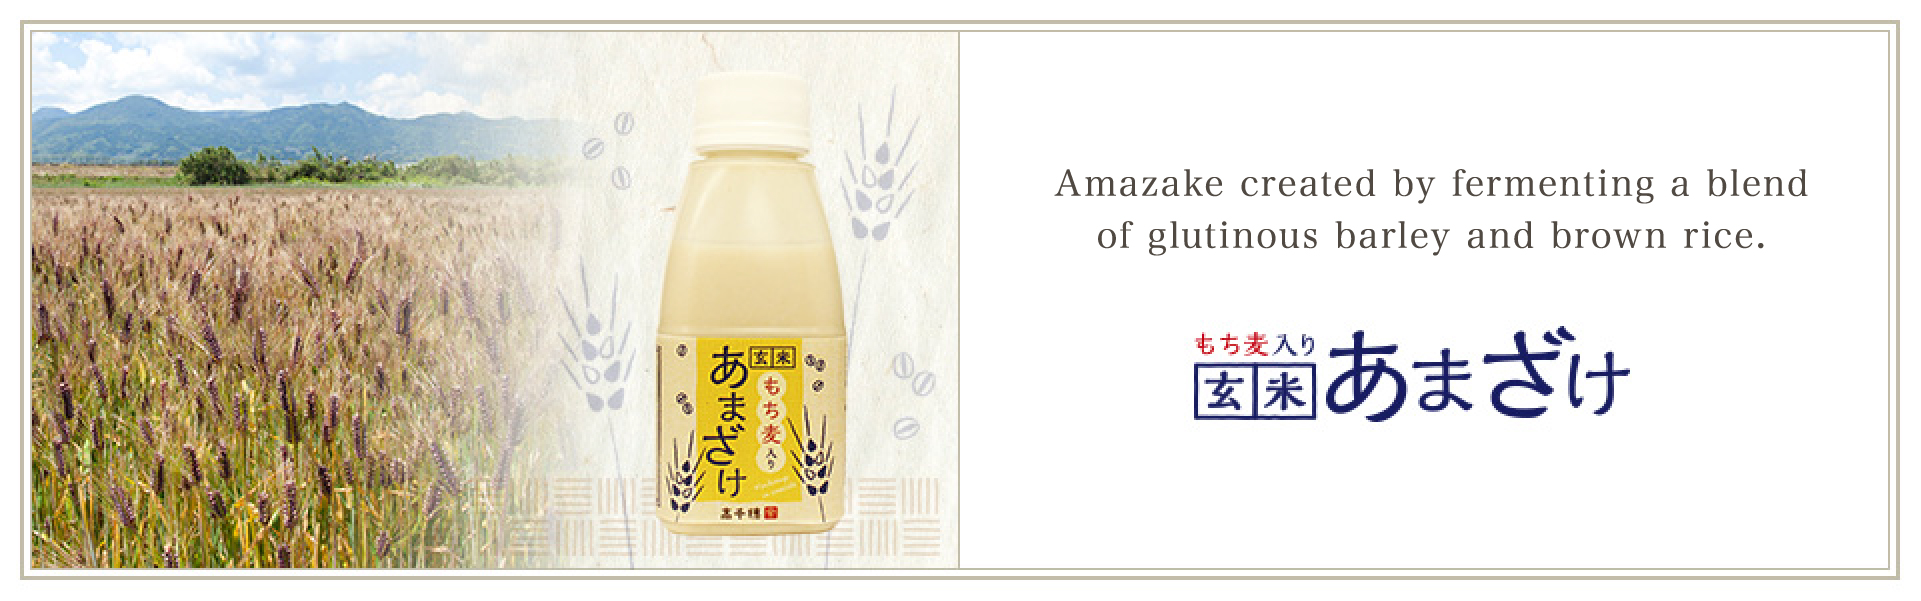 Amazake created by fermenting a blend of glutinous barley and brown rice. Glutinous Barley and Brown Rice Amazake